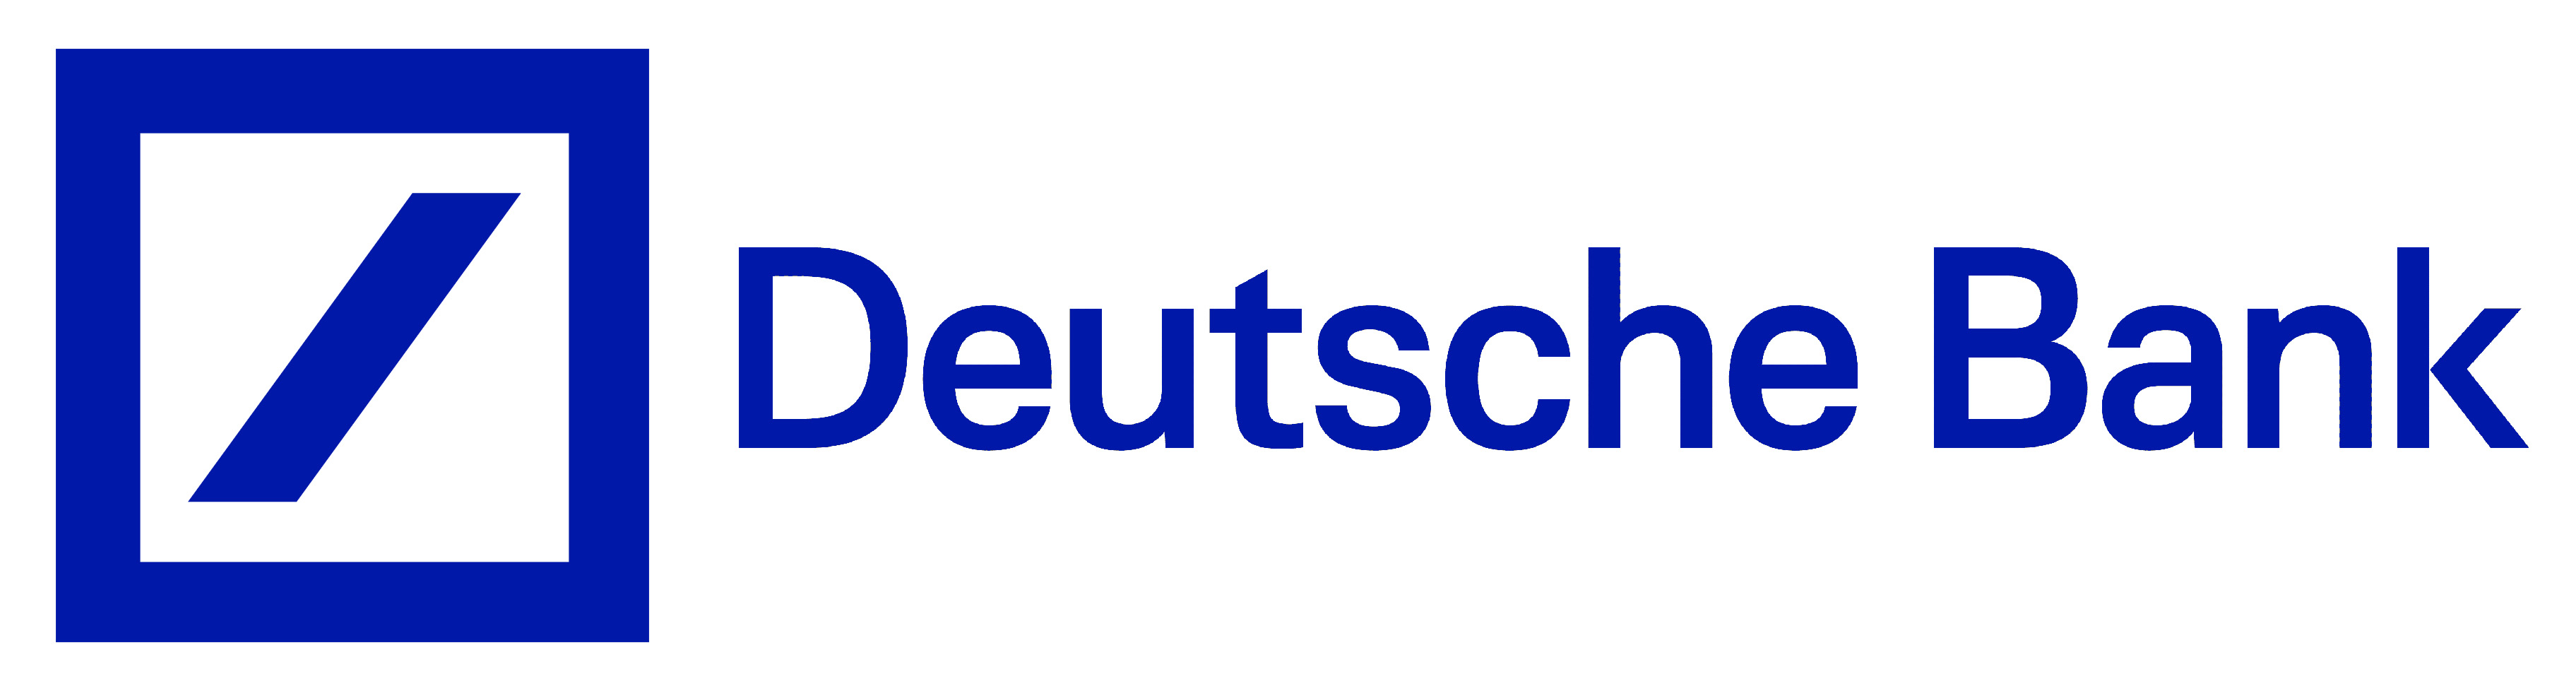 Deutsche Bank Logo - Color-Deutsche-Bank-Logo - Oliver Heath